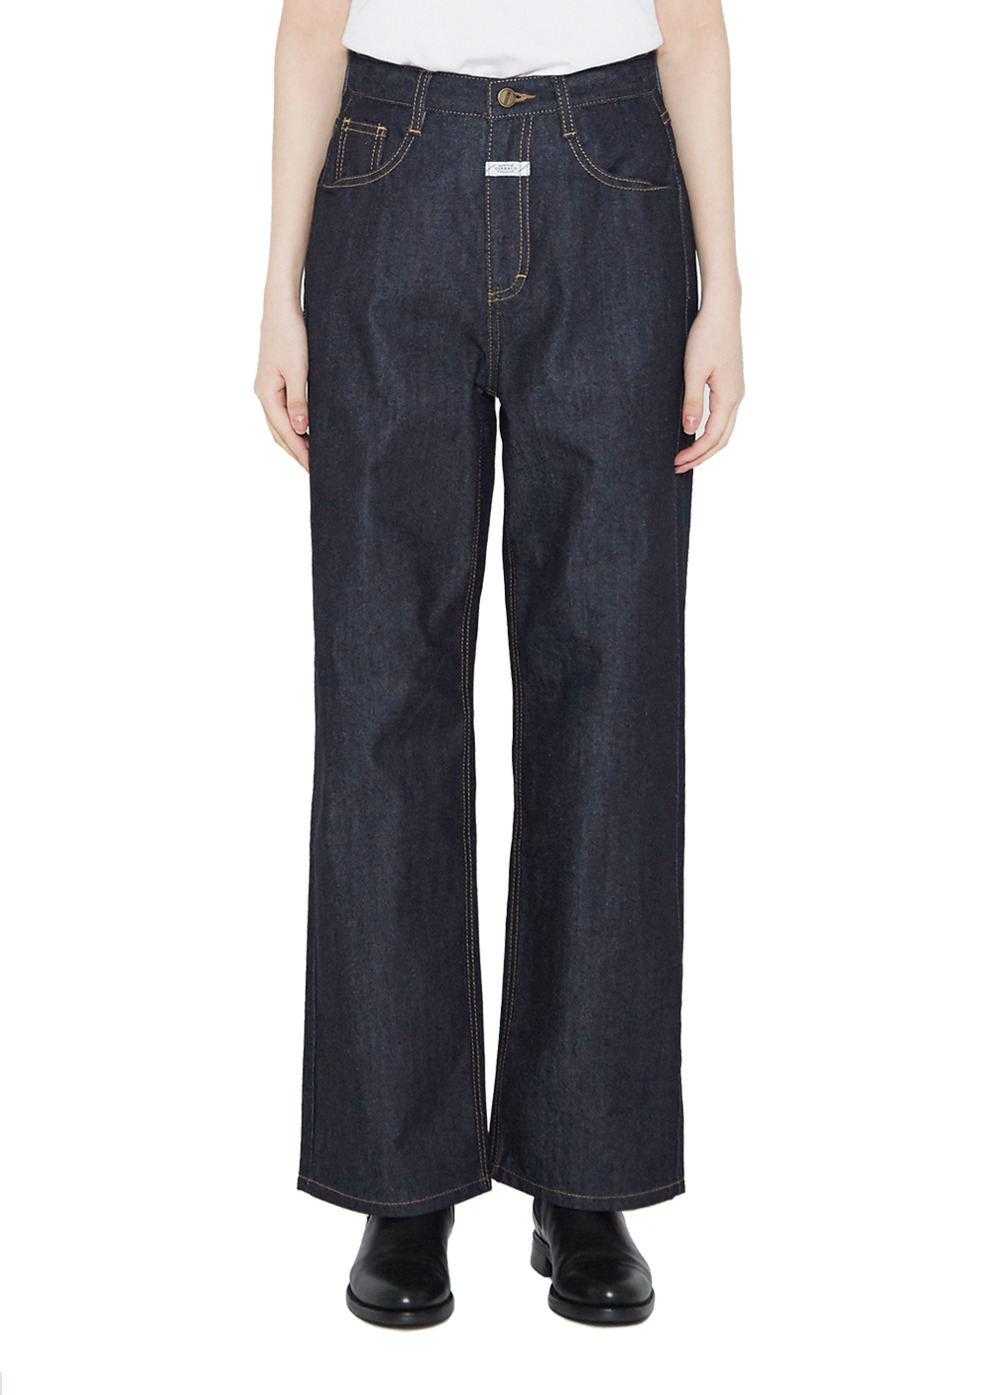 MFG W WIDE JEANS rigid blue